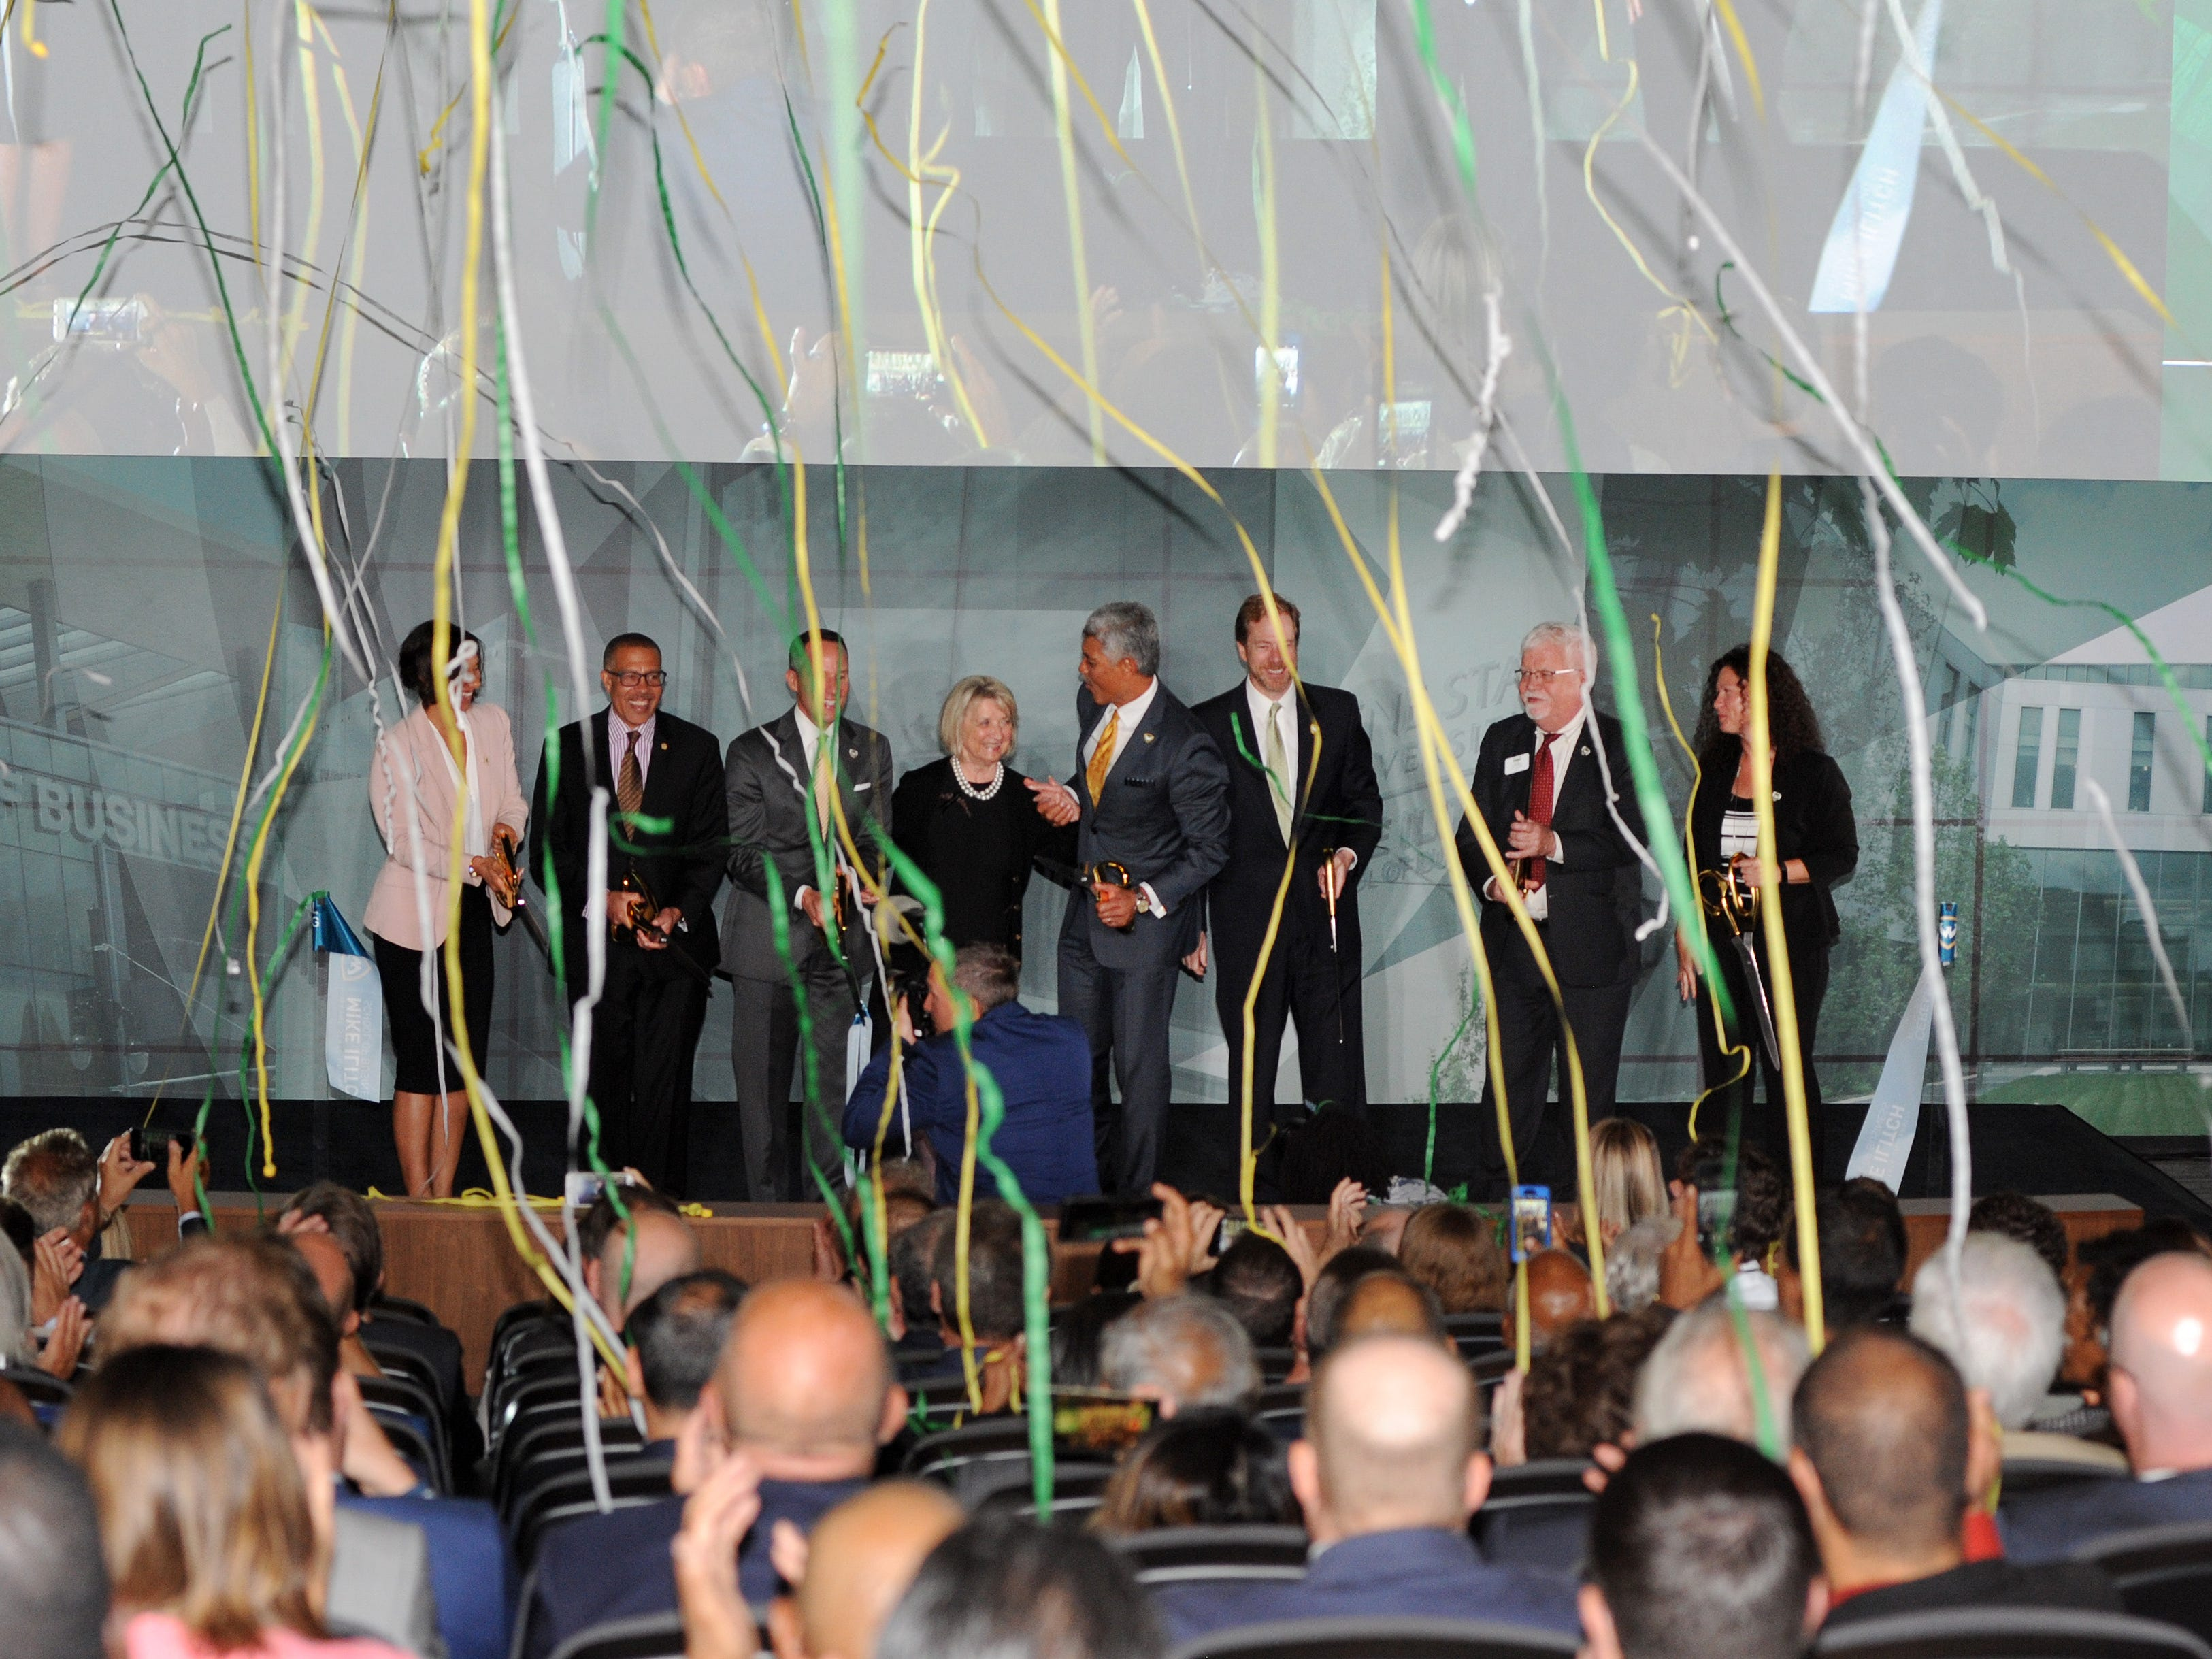 Following the ribbon cutting ceremony for the new Mike Ilitch School of Business, confetti streams rain down onto attendees from the ceiling.